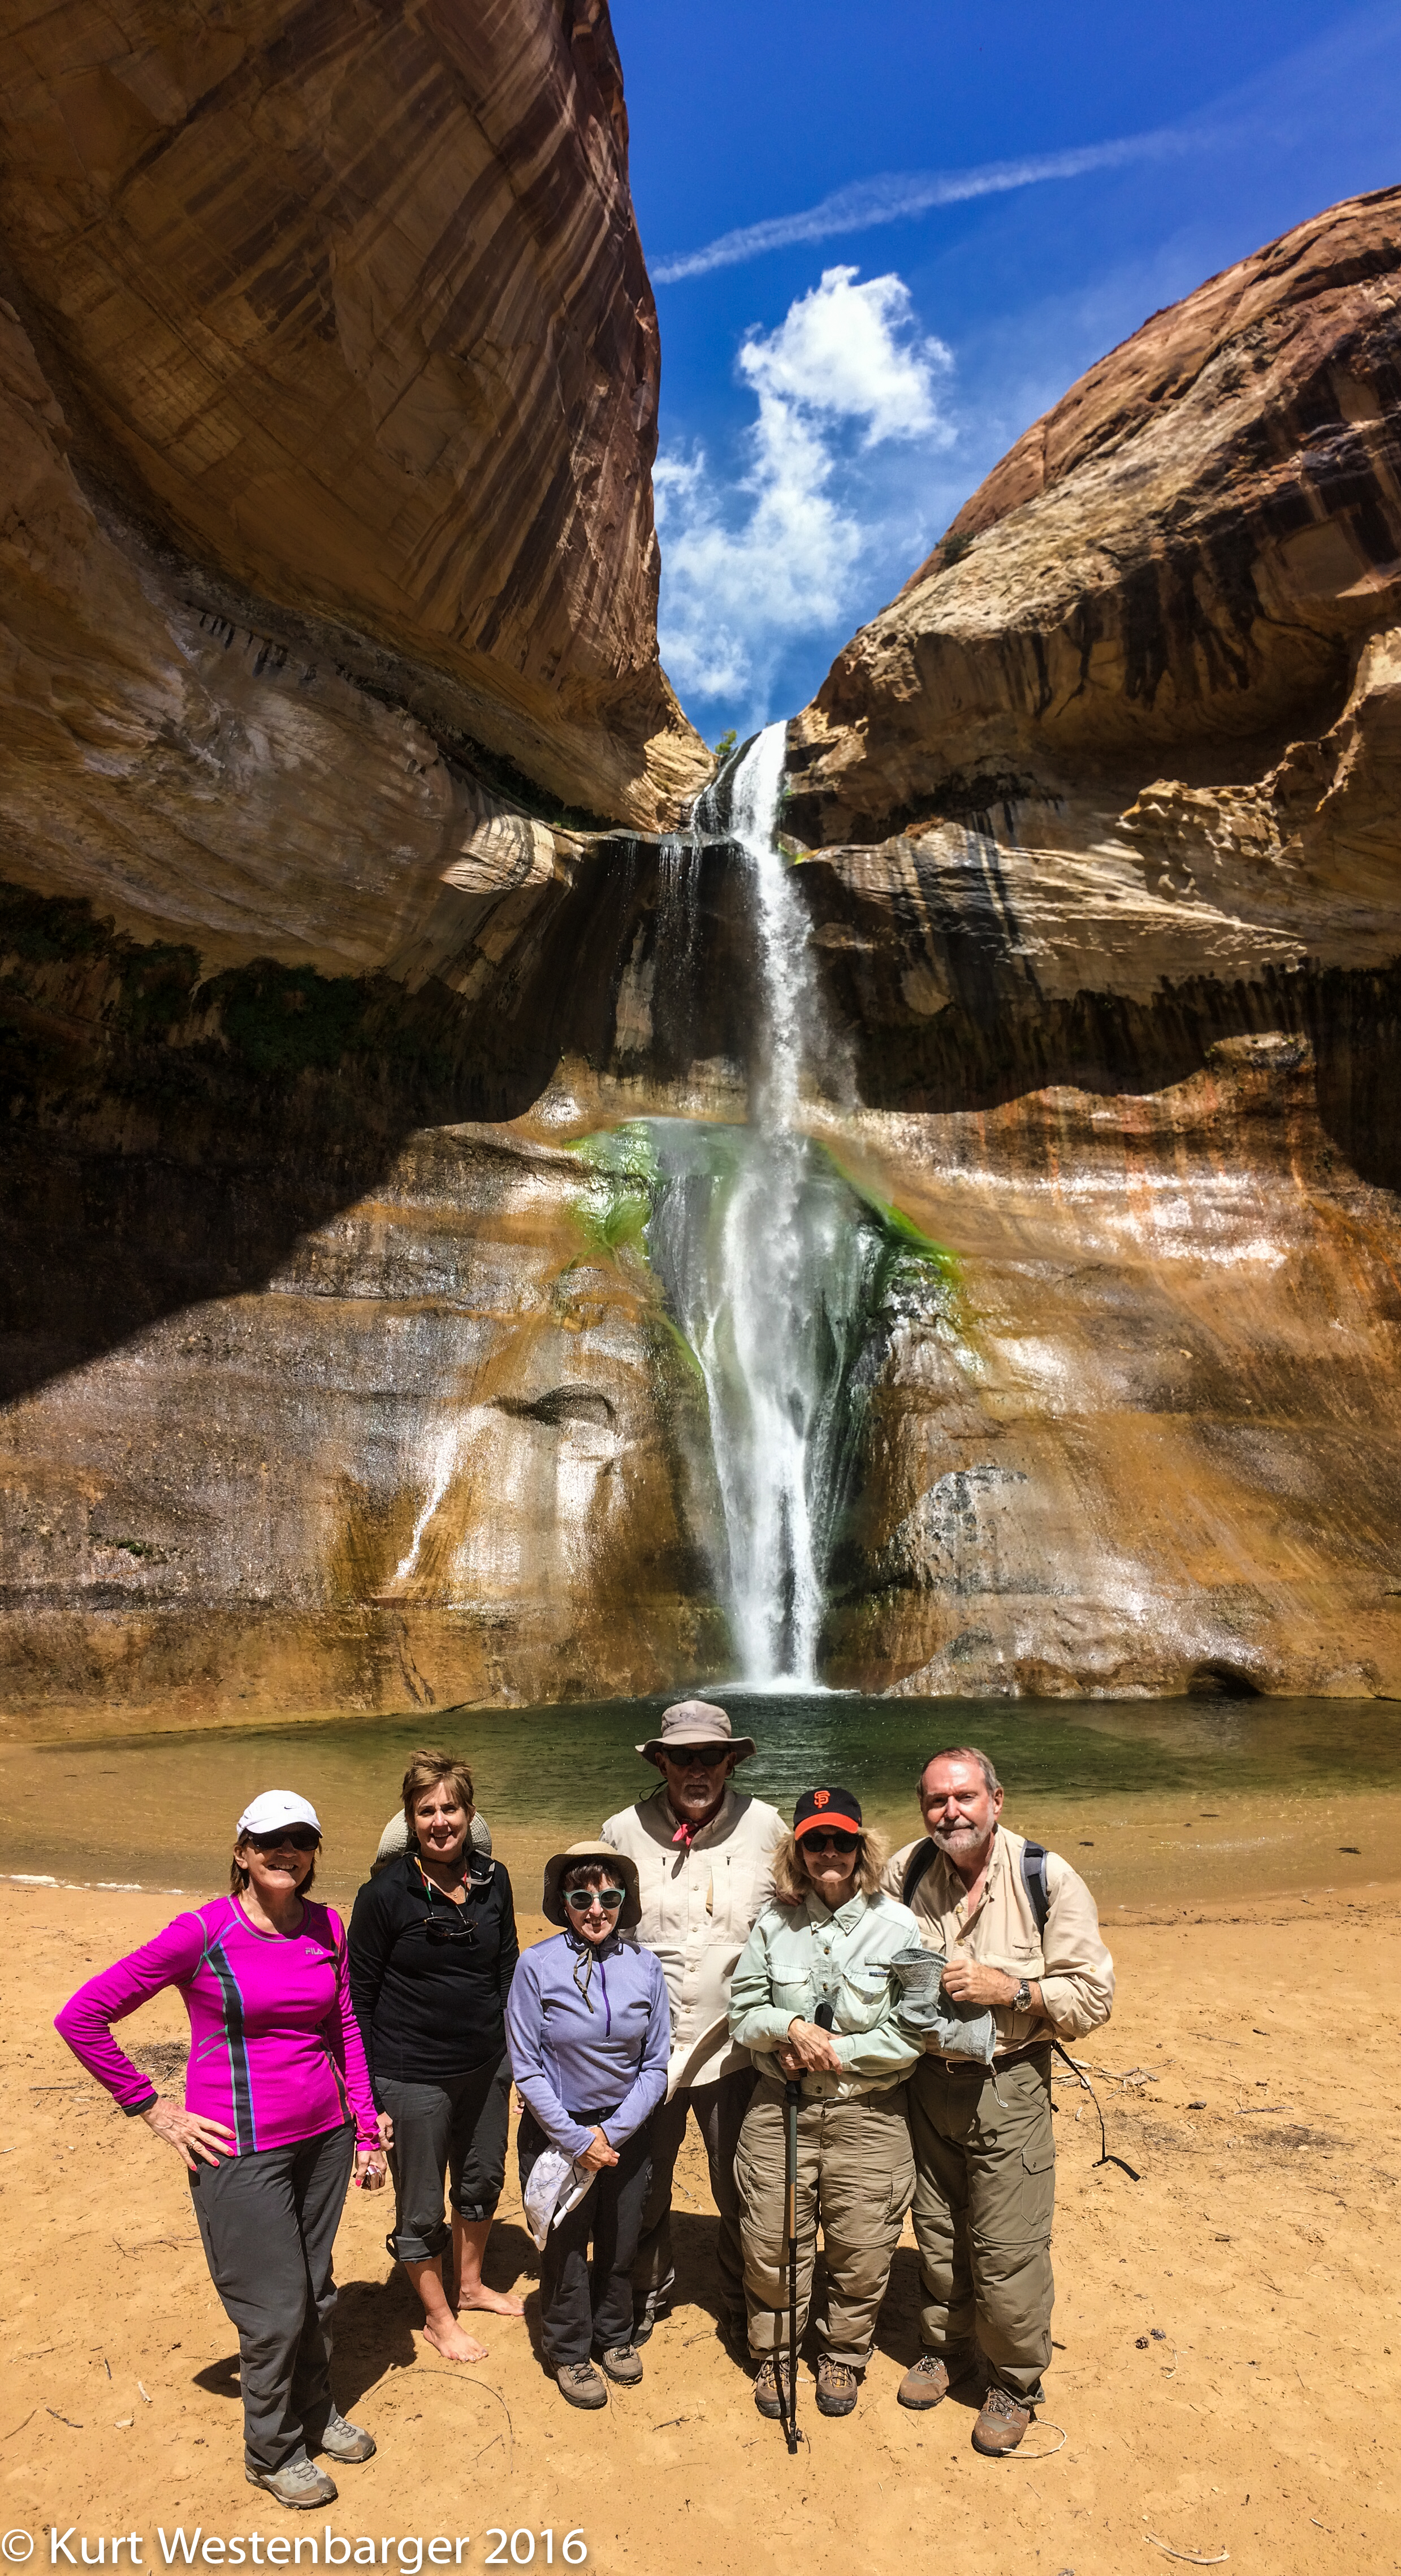 This trip's group enjoying Calf Creek Falls in Grand Staircase-Escalante National Monument.